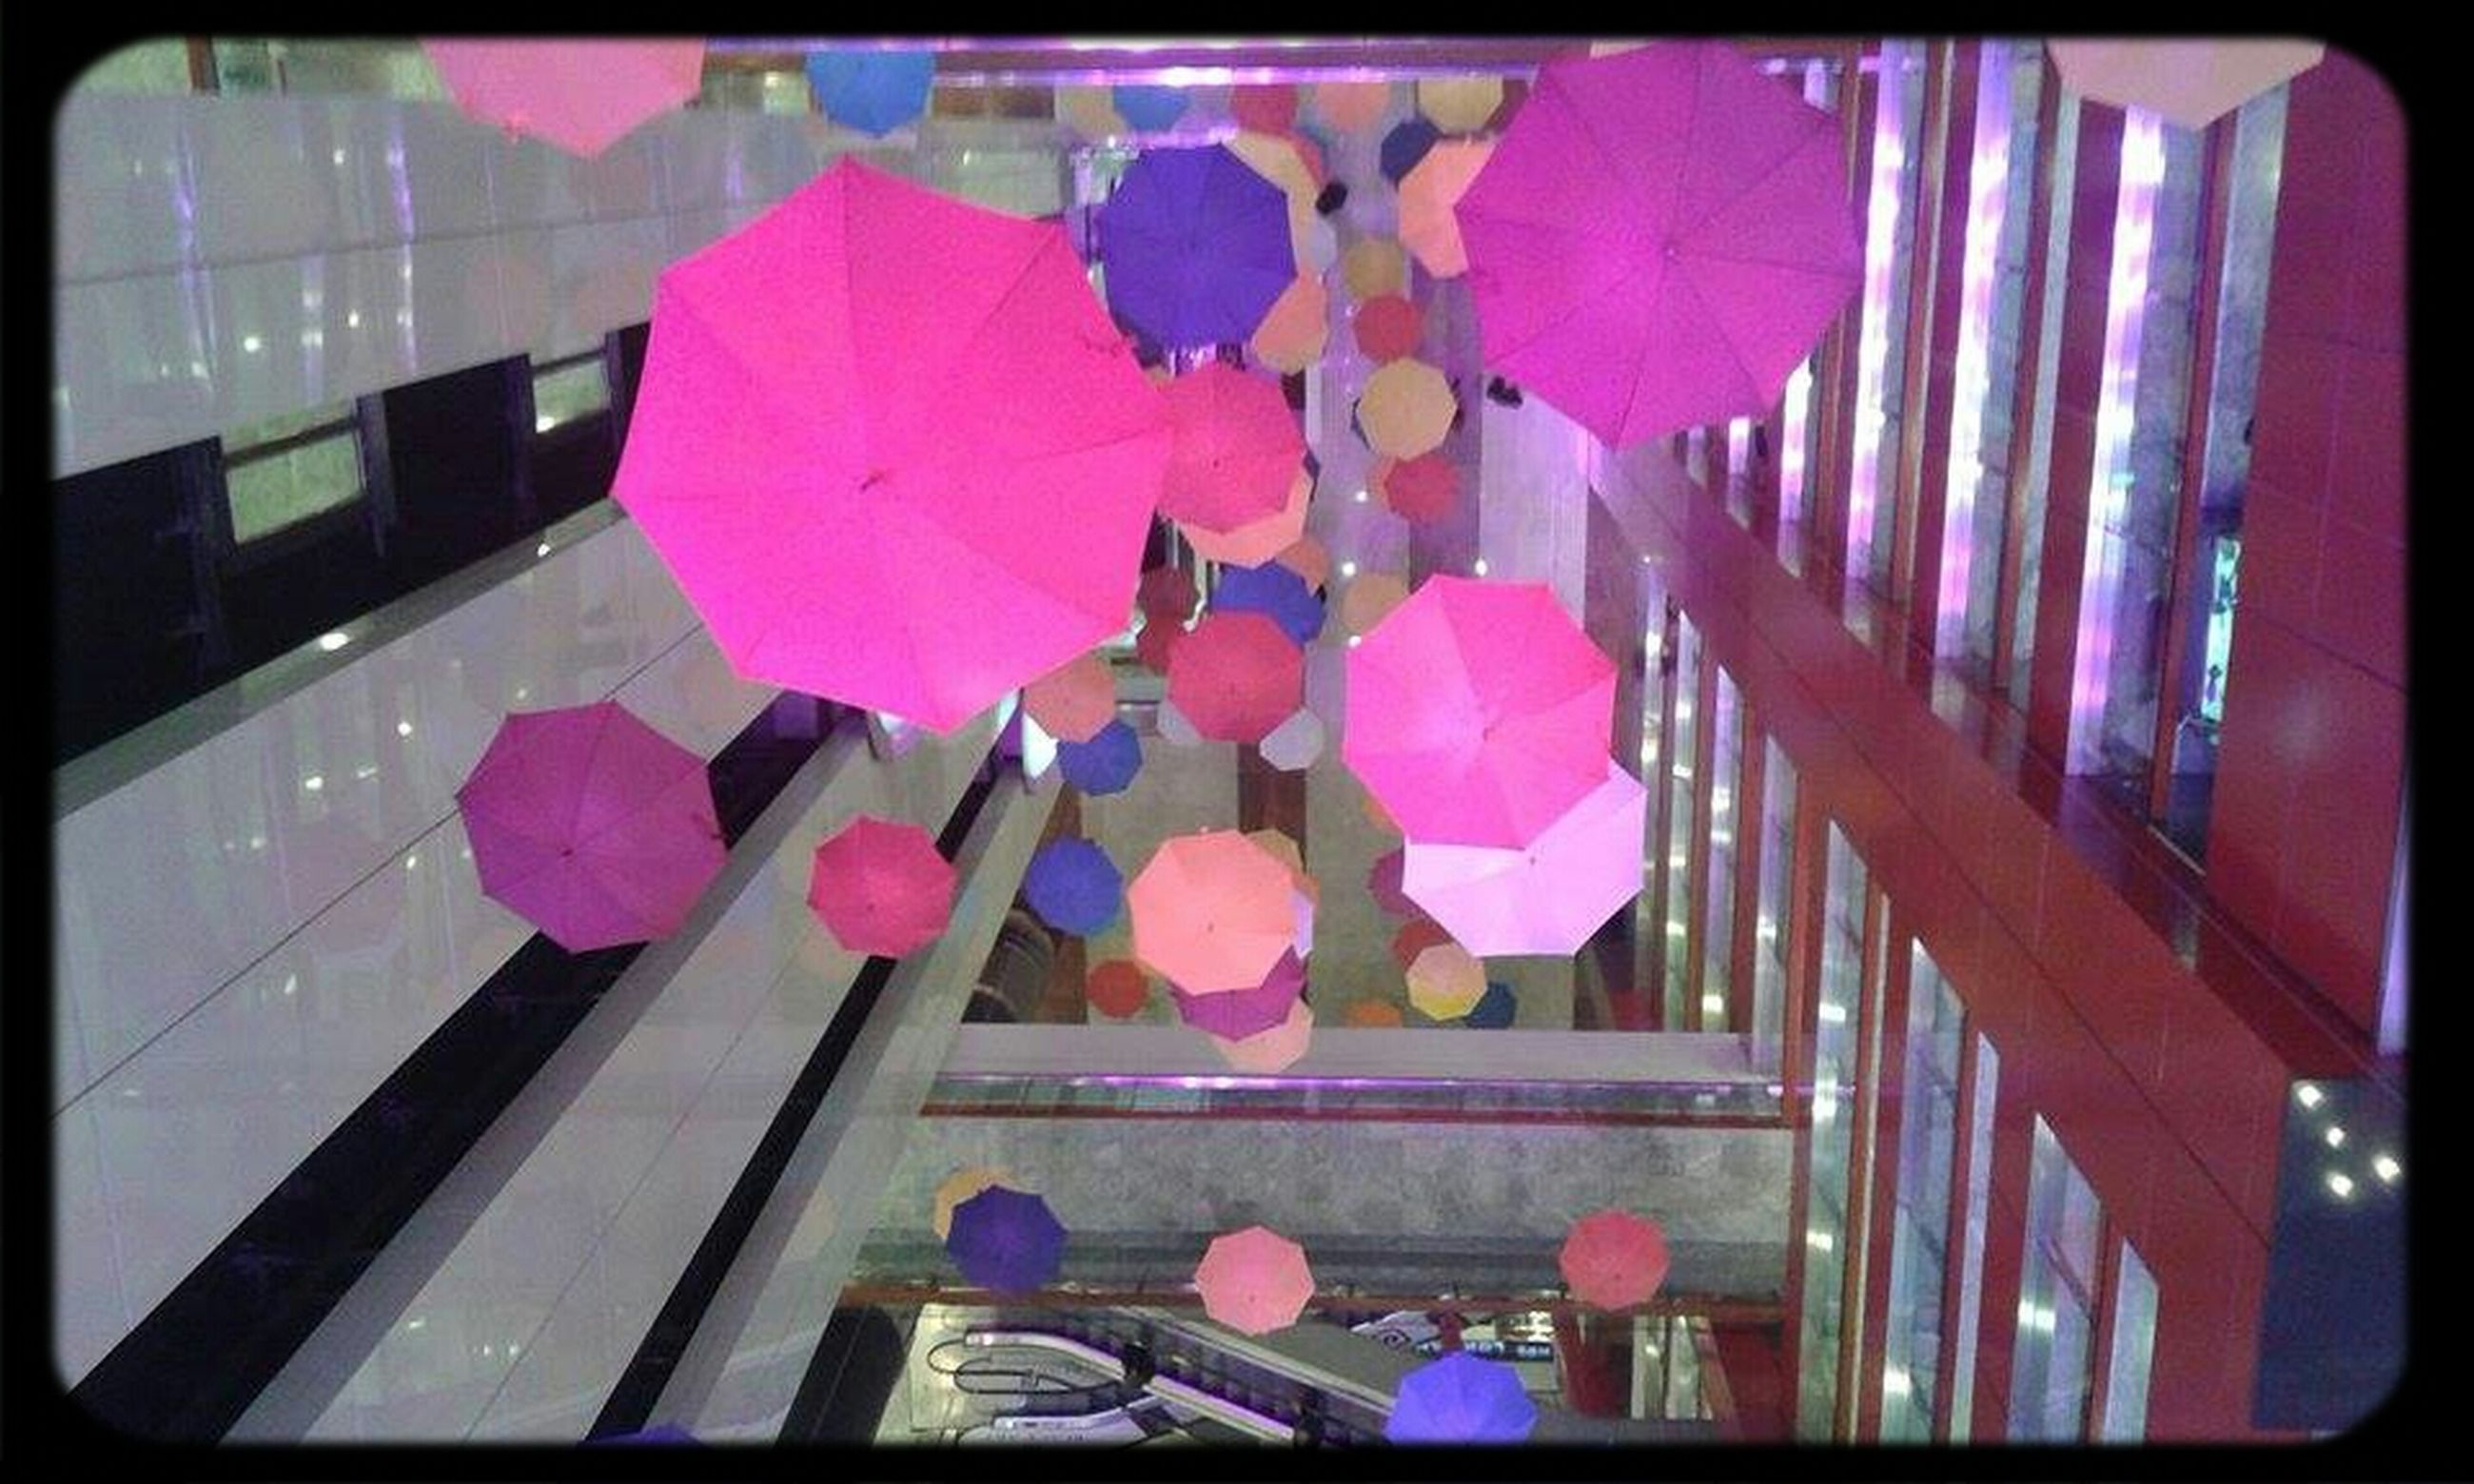 transfer print, auto post production filter, flower, pink color, umbrella, lifestyles, indoors, multi colored, leisure activity, fragility, built structure, day, building exterior, architecture, men, high angle view, person